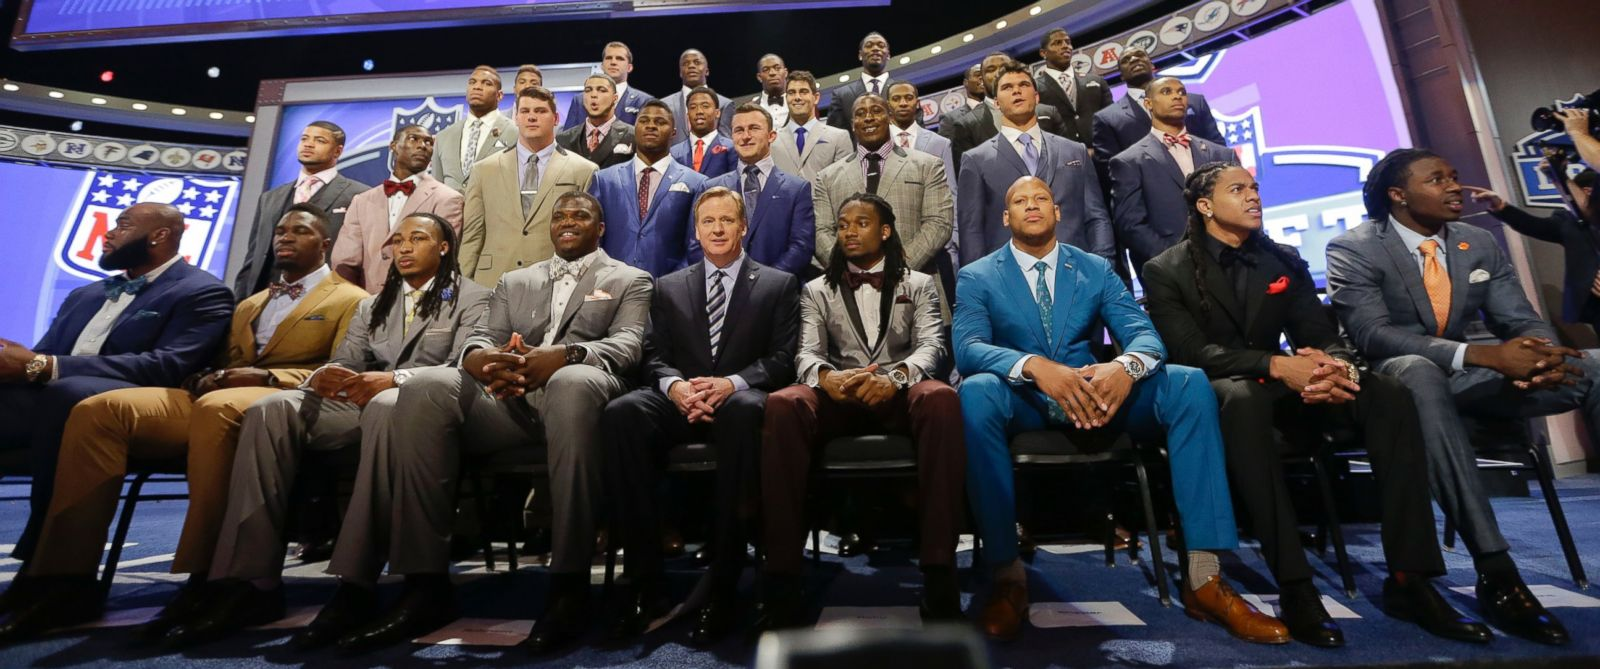 PHOTO: NFL draftees pose with commissioner Roger Goodell at the start of the 2014 NFL Draft, Thursday, May 8, 2014, in New York.